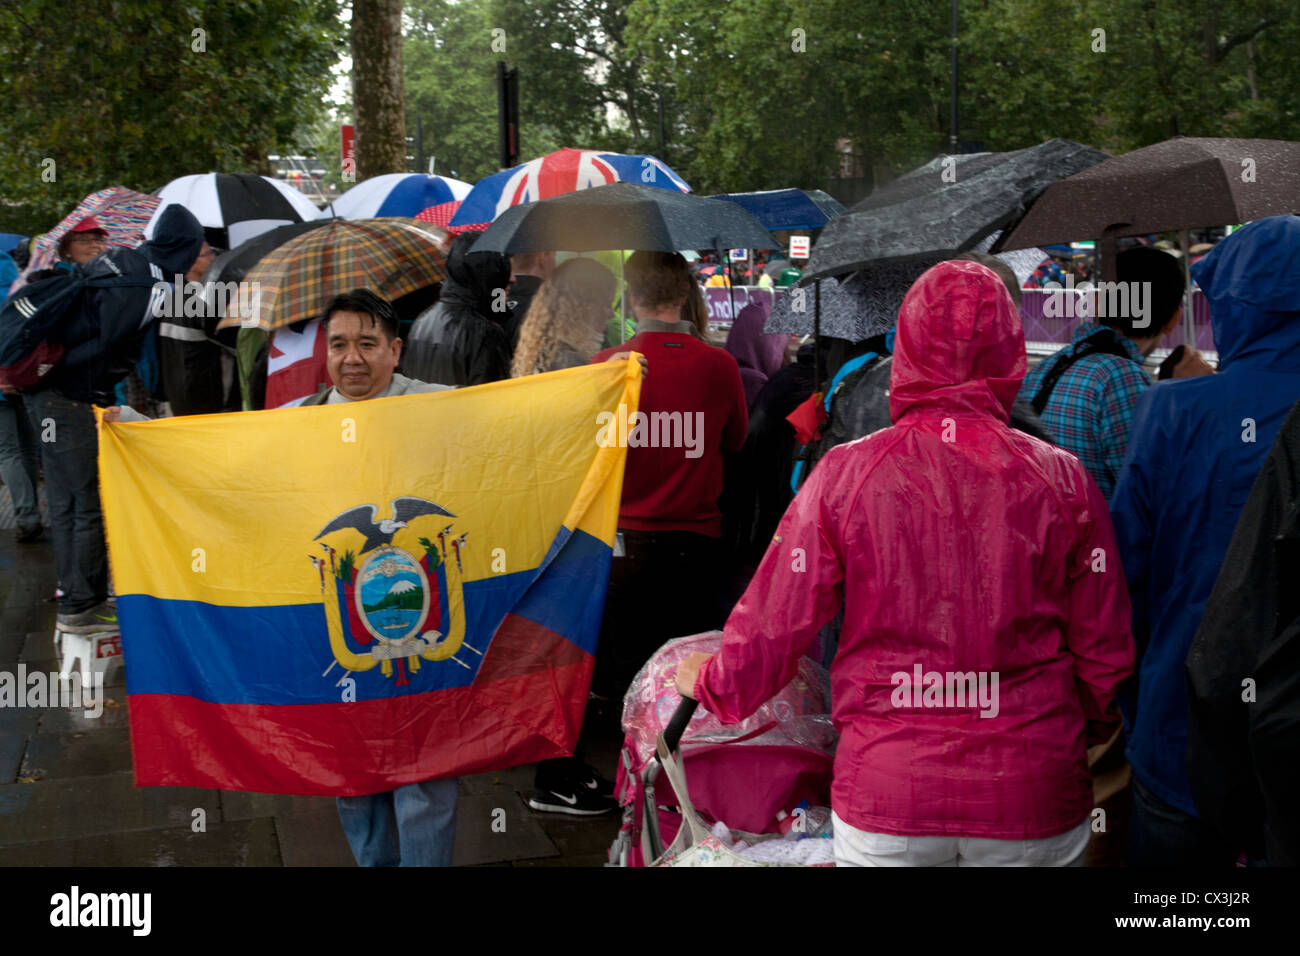 Supporter with Ecuadorian Flag at Woman's Marathon London Olympic Games Victoria Embankment London England - Stock Image